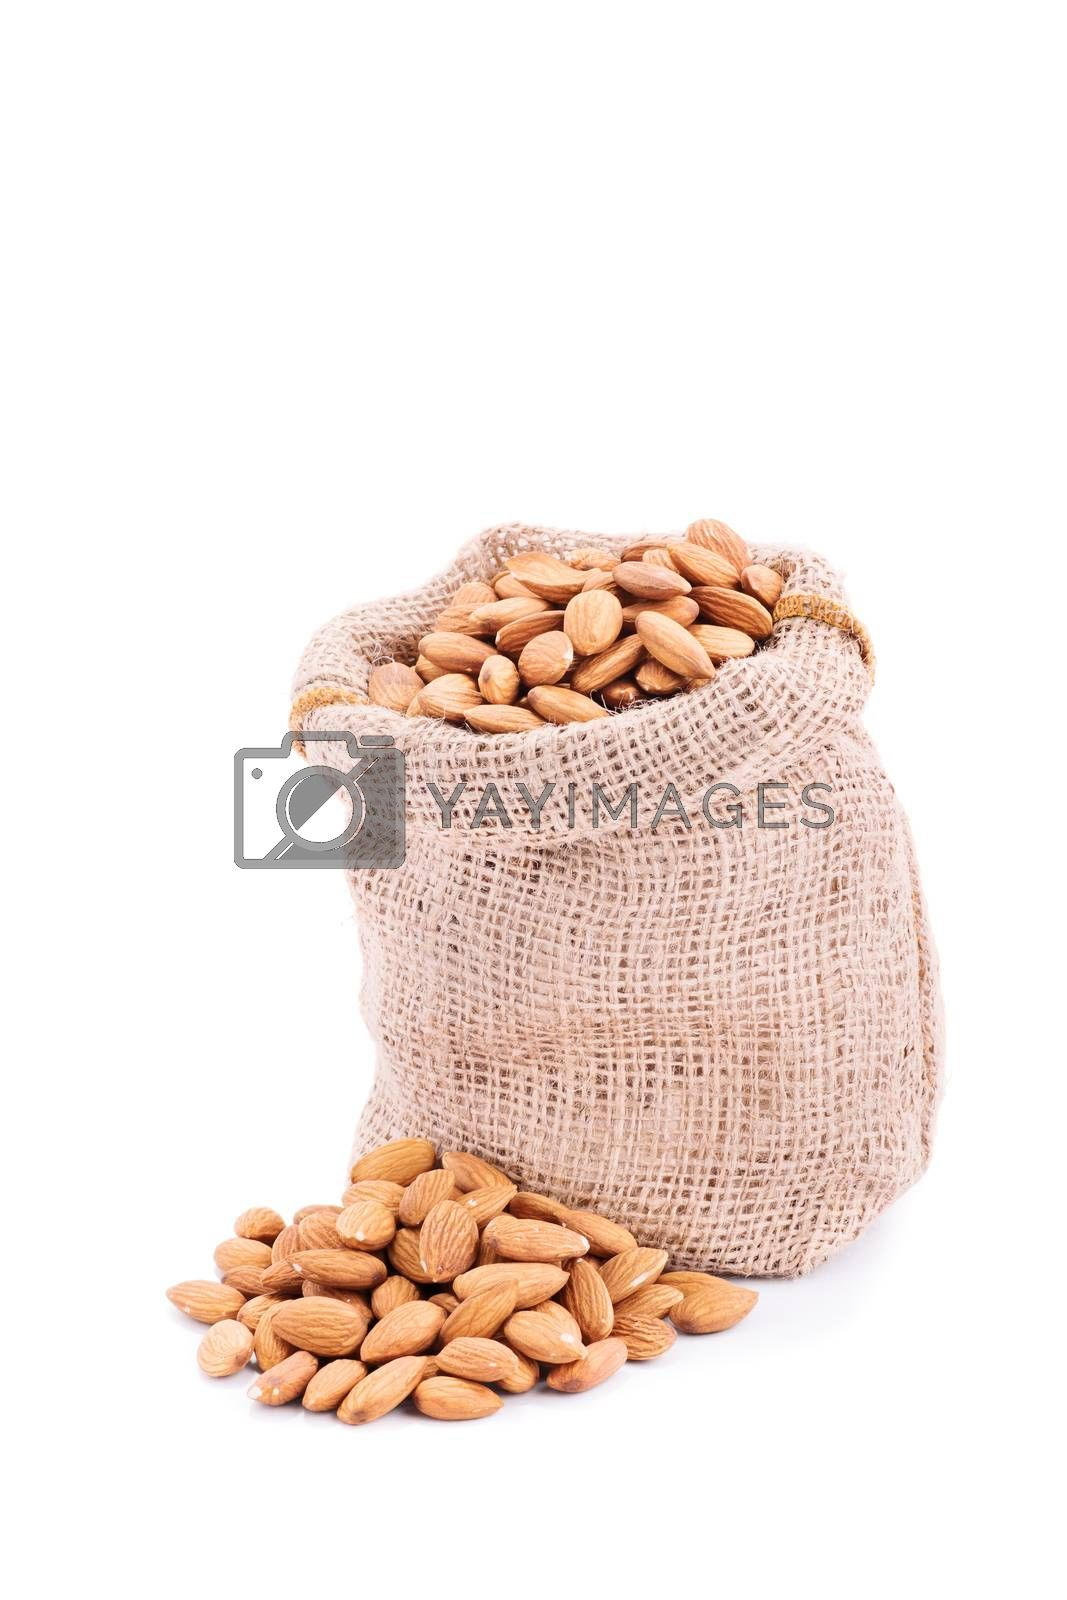 Close up shot of a small burlap sack of fresh almonds, isolated on white background.